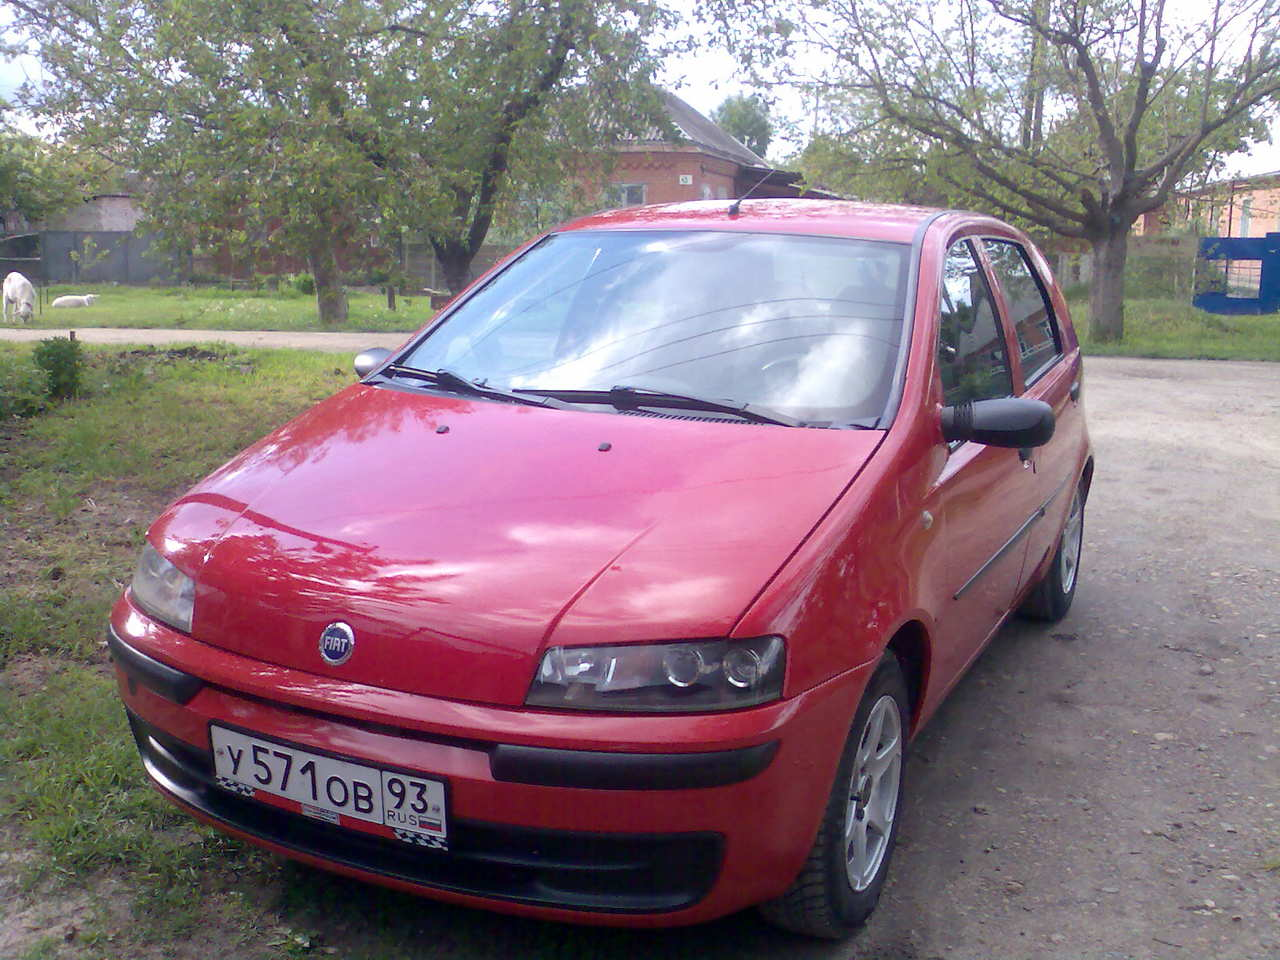 1999 fiat punto photos 1 2 gasoline ff manual for sale. Black Bedroom Furniture Sets. Home Design Ideas